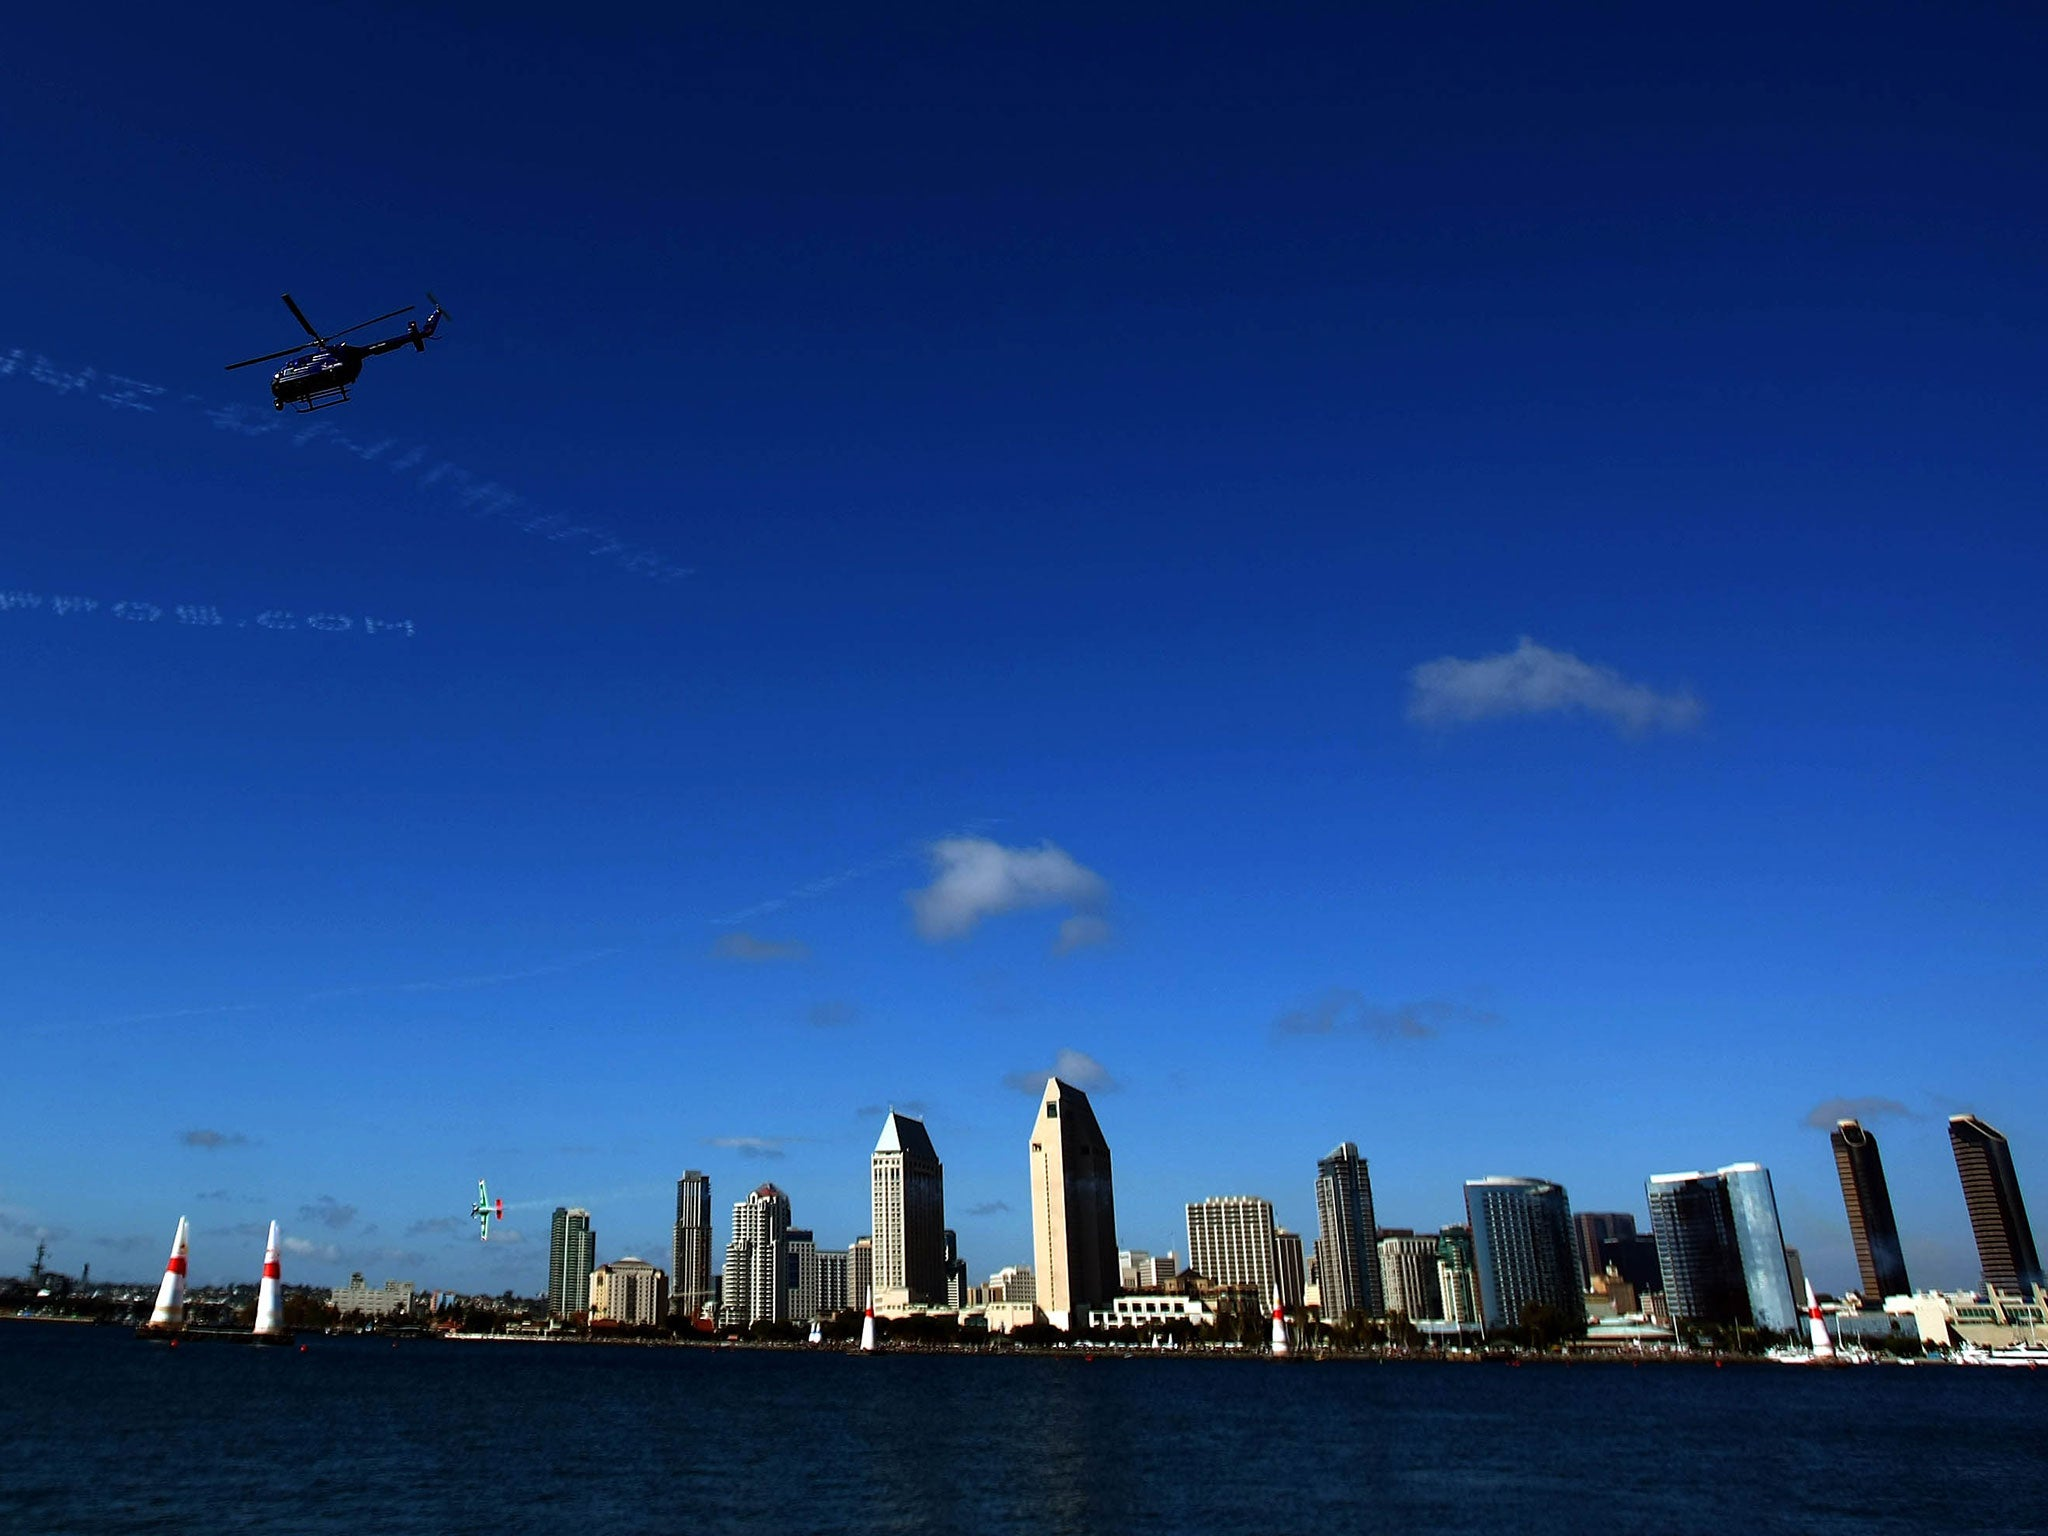 25. San Diego, California